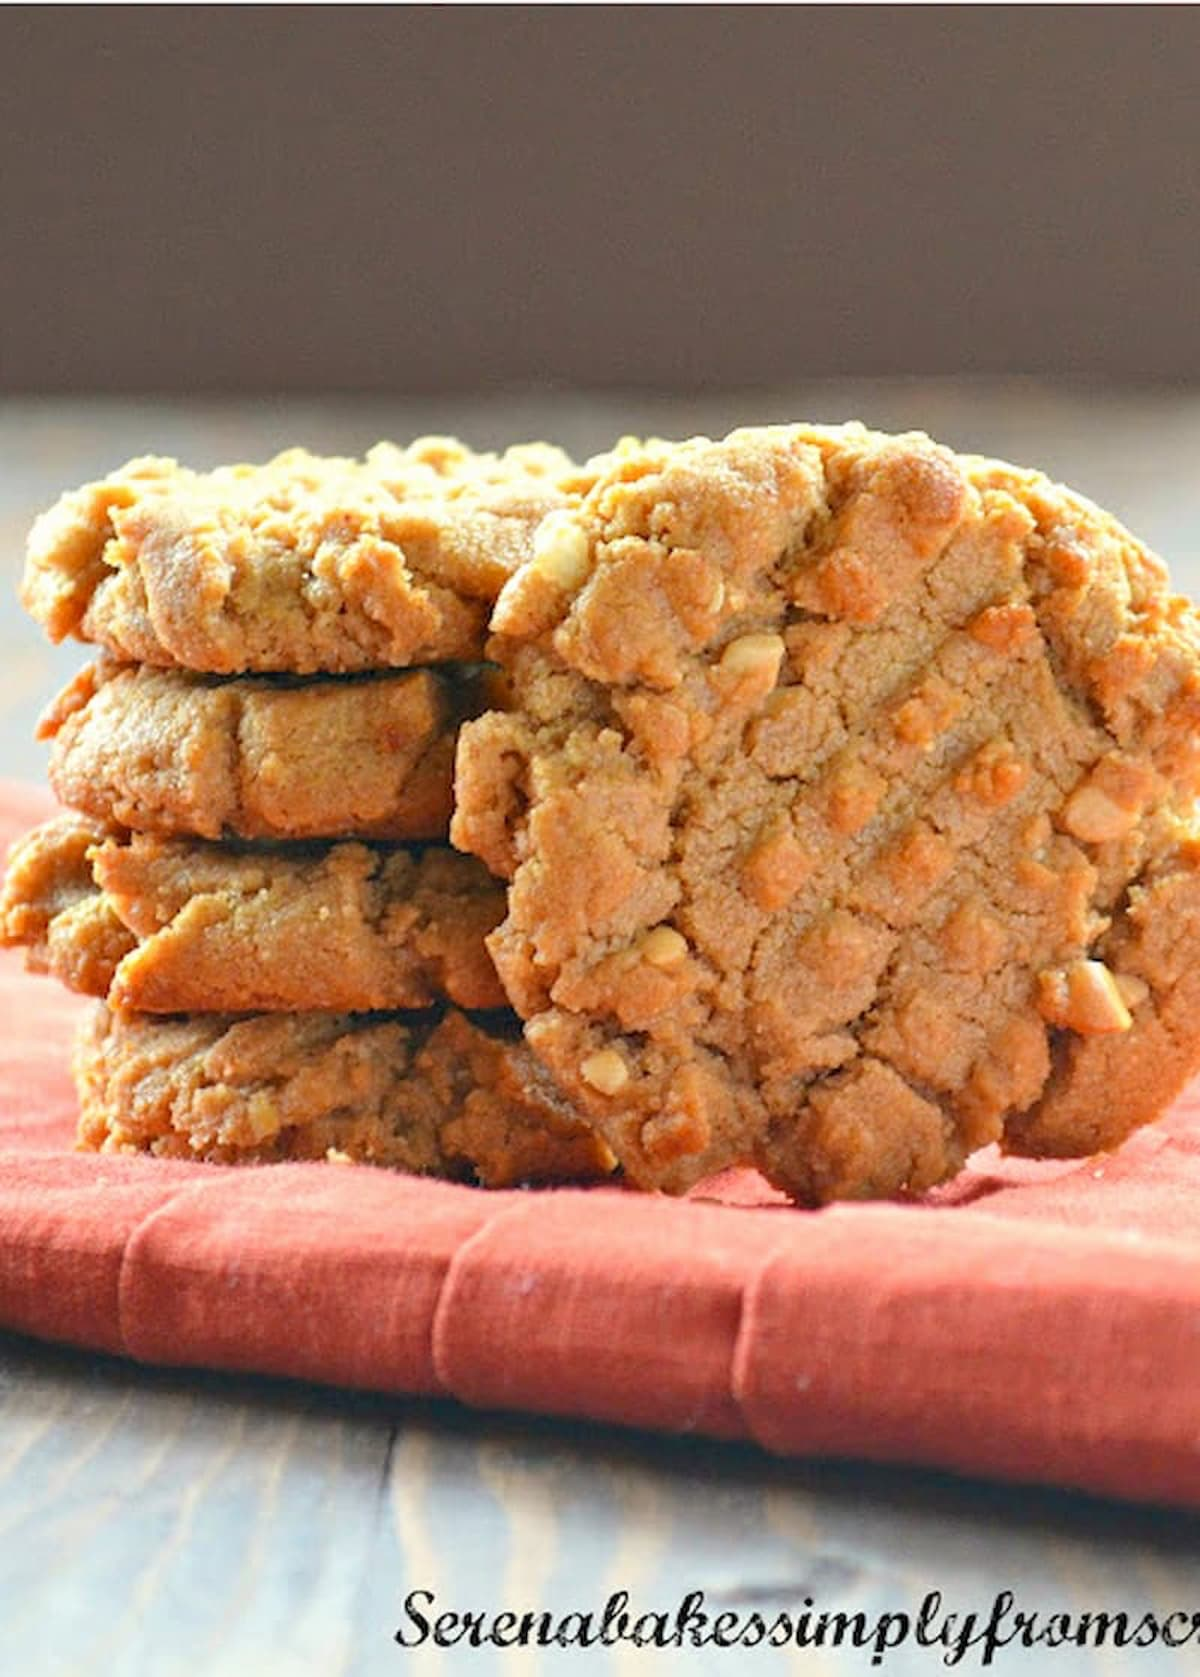 Flourless Peanut Butter Cookies stacked 3 high on an orange napkin with 1 standing up in front.